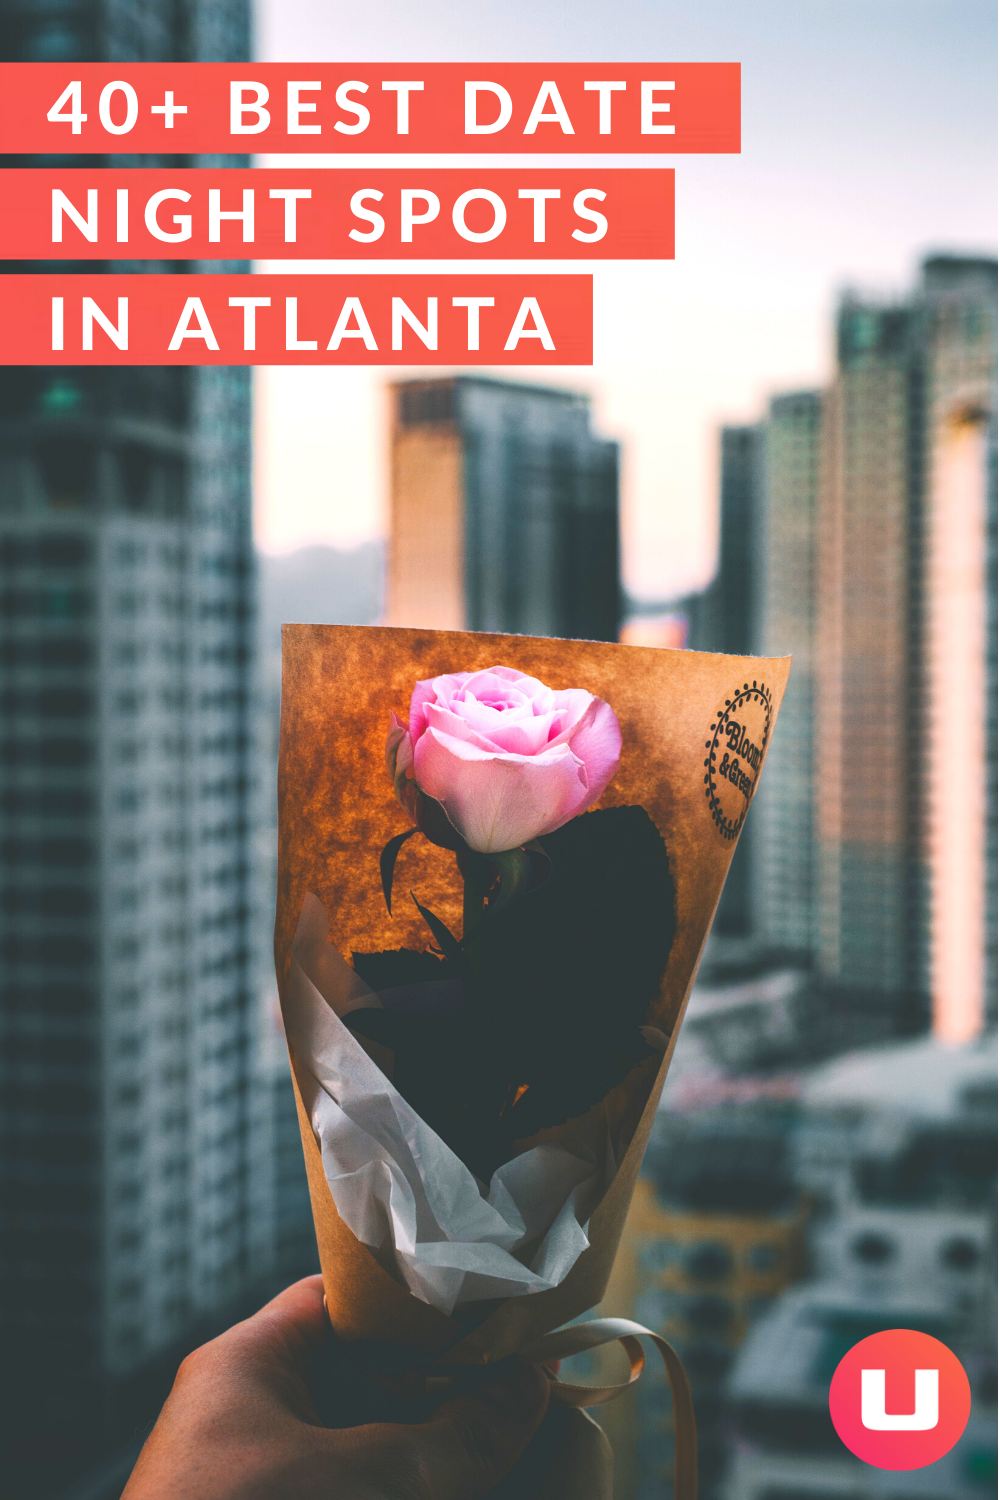 If You Re In Need Of Some Fun New Date Night Ideas We Have 40 Of The Them Have A Night On The Town In Atlanta Using Our Guide Good Dates Date